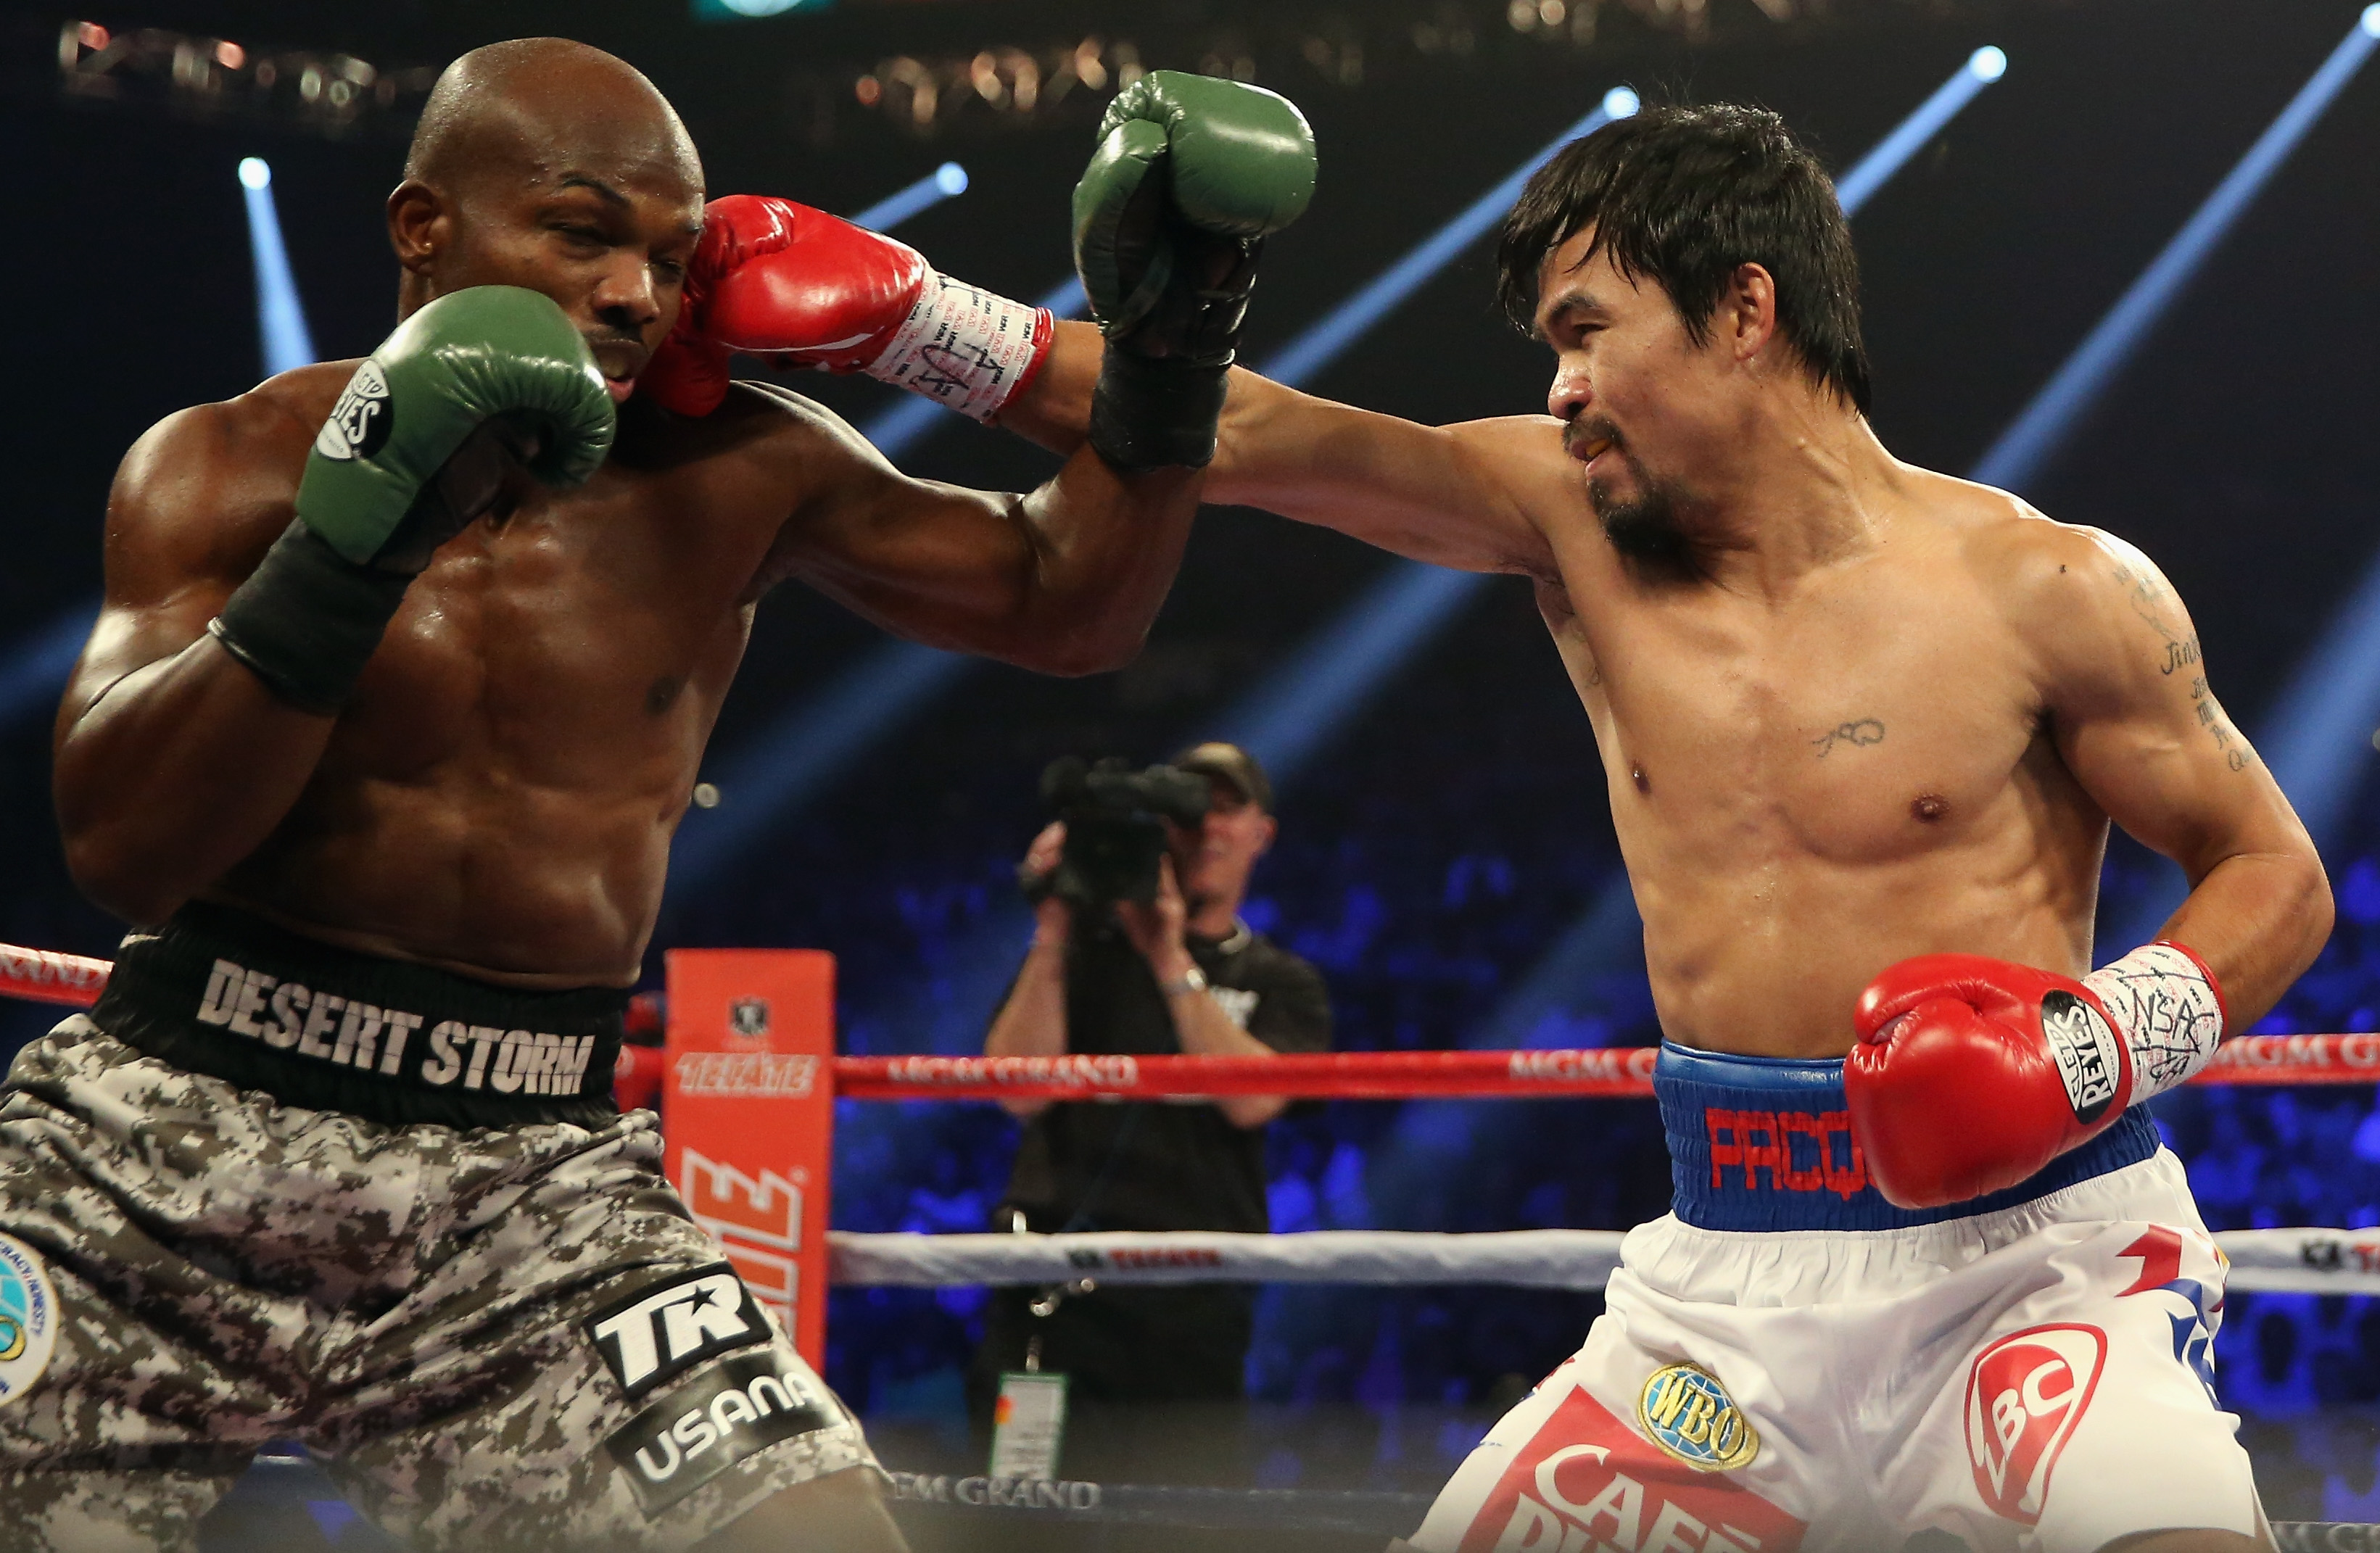 Manny Pacquiao vs. Timothy Bradley time, Manny Pacquiao vs. Timothy Bradley channel, Manny Pacquiao vs. Timothy Bradley main event, Pacquiao vs. Bradley time, Pacquiao vs. Bradley channel, Pacquiao vs. Bradley main event,